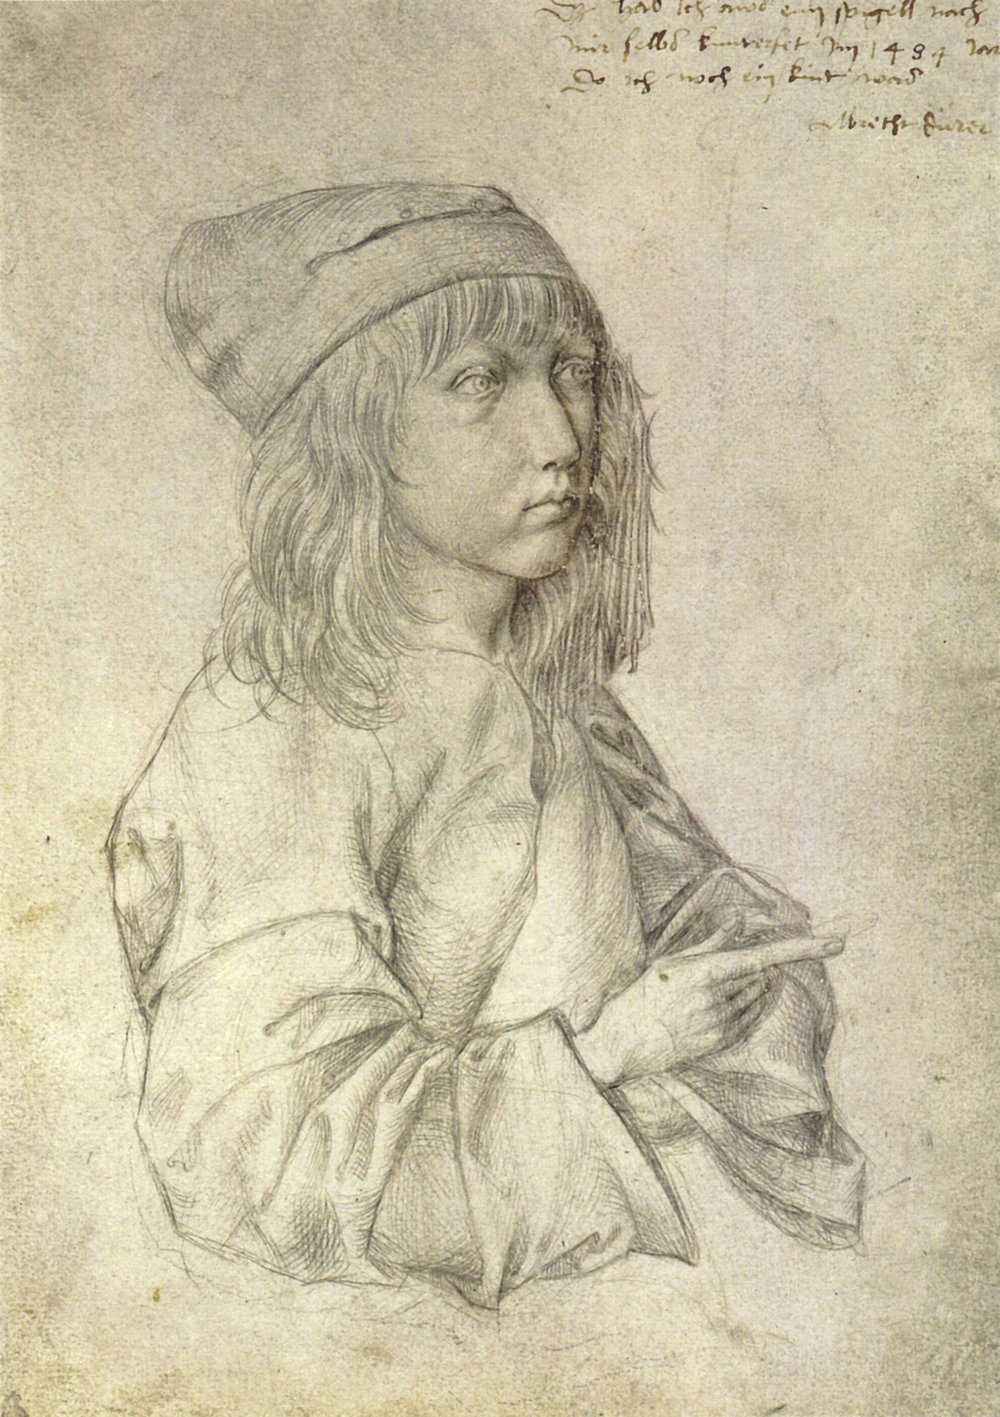 Self Portrait at 13, silverpoint, Albrecht Dürer (Image courtesy of the Albertina Vienna)